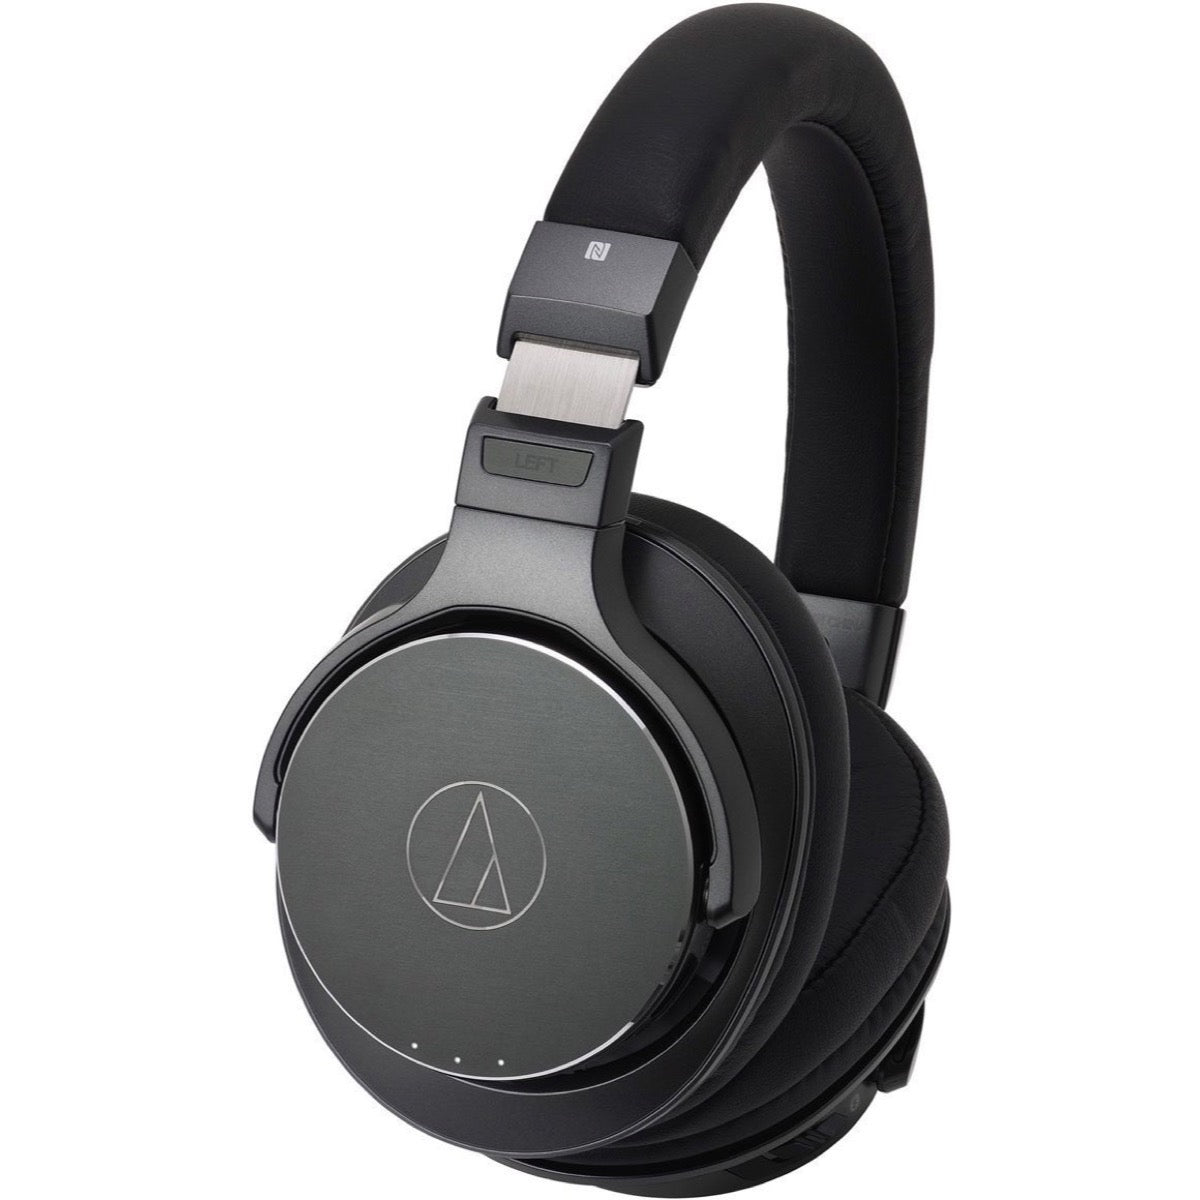 Audio-Technica ATH-DSR7BT Wireless Over-Ear Headphones